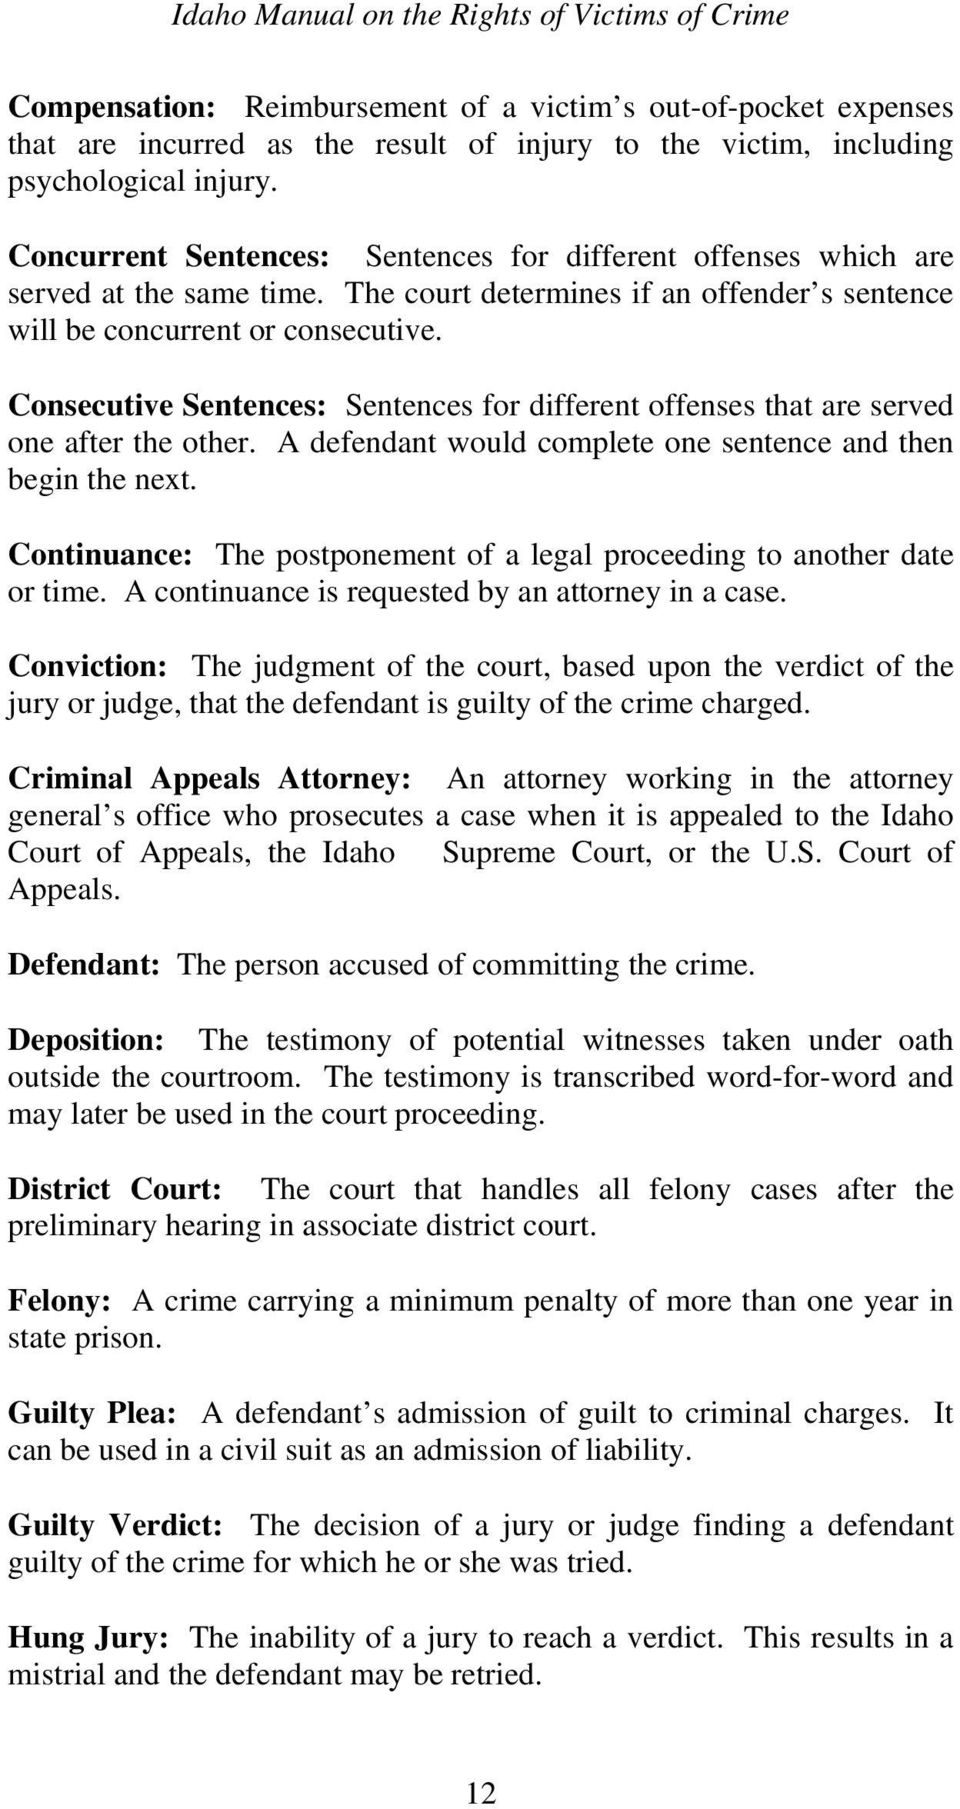 Consecutive Sentences: Sentences for different offenses that are served one after the other. A defendant would complete one sentence and then begin the next.